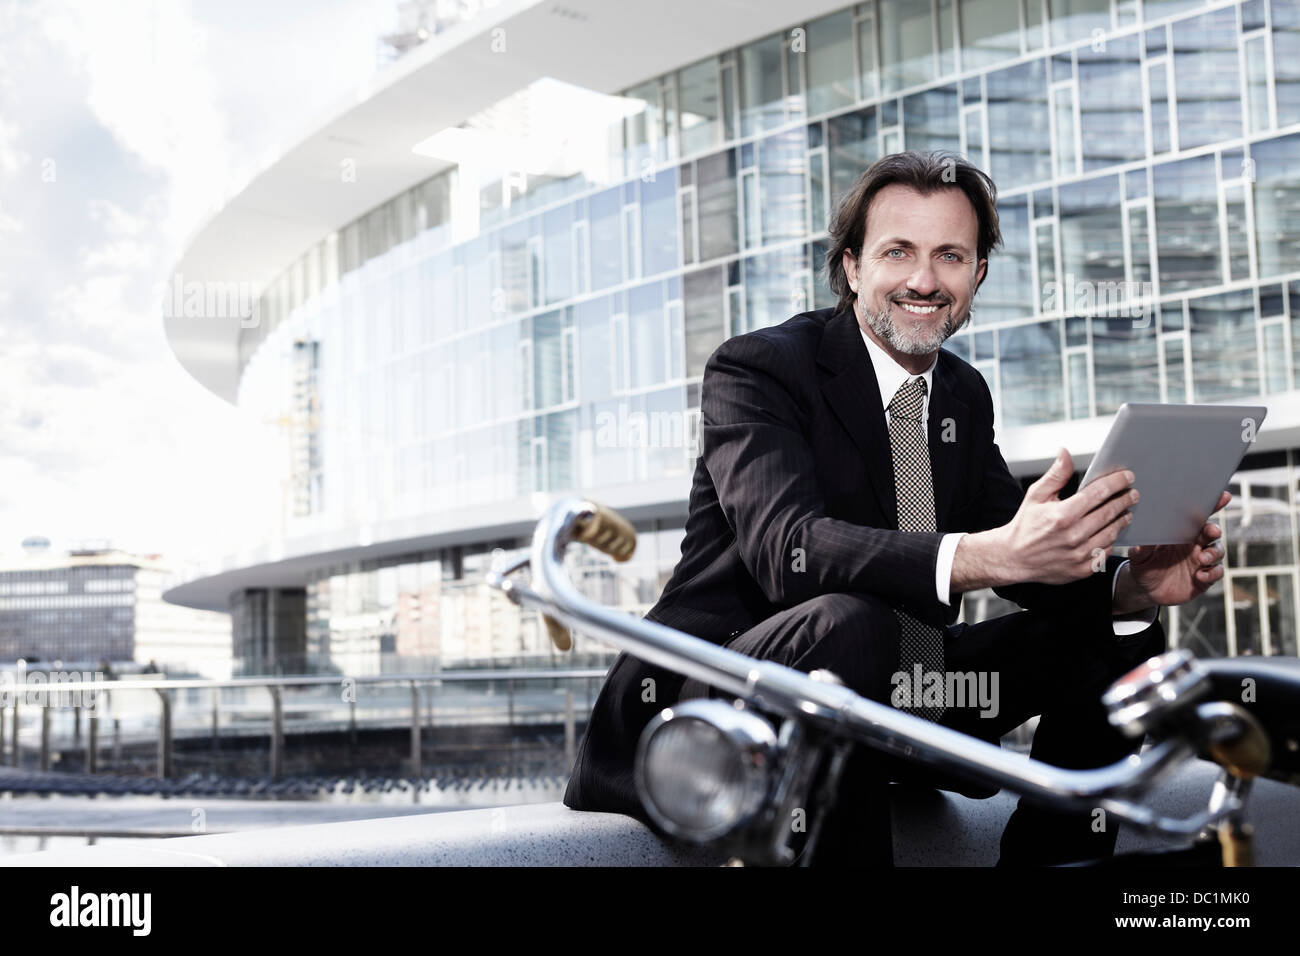 Mid adult businessman using digital tablet in city, portrait - Stock Image